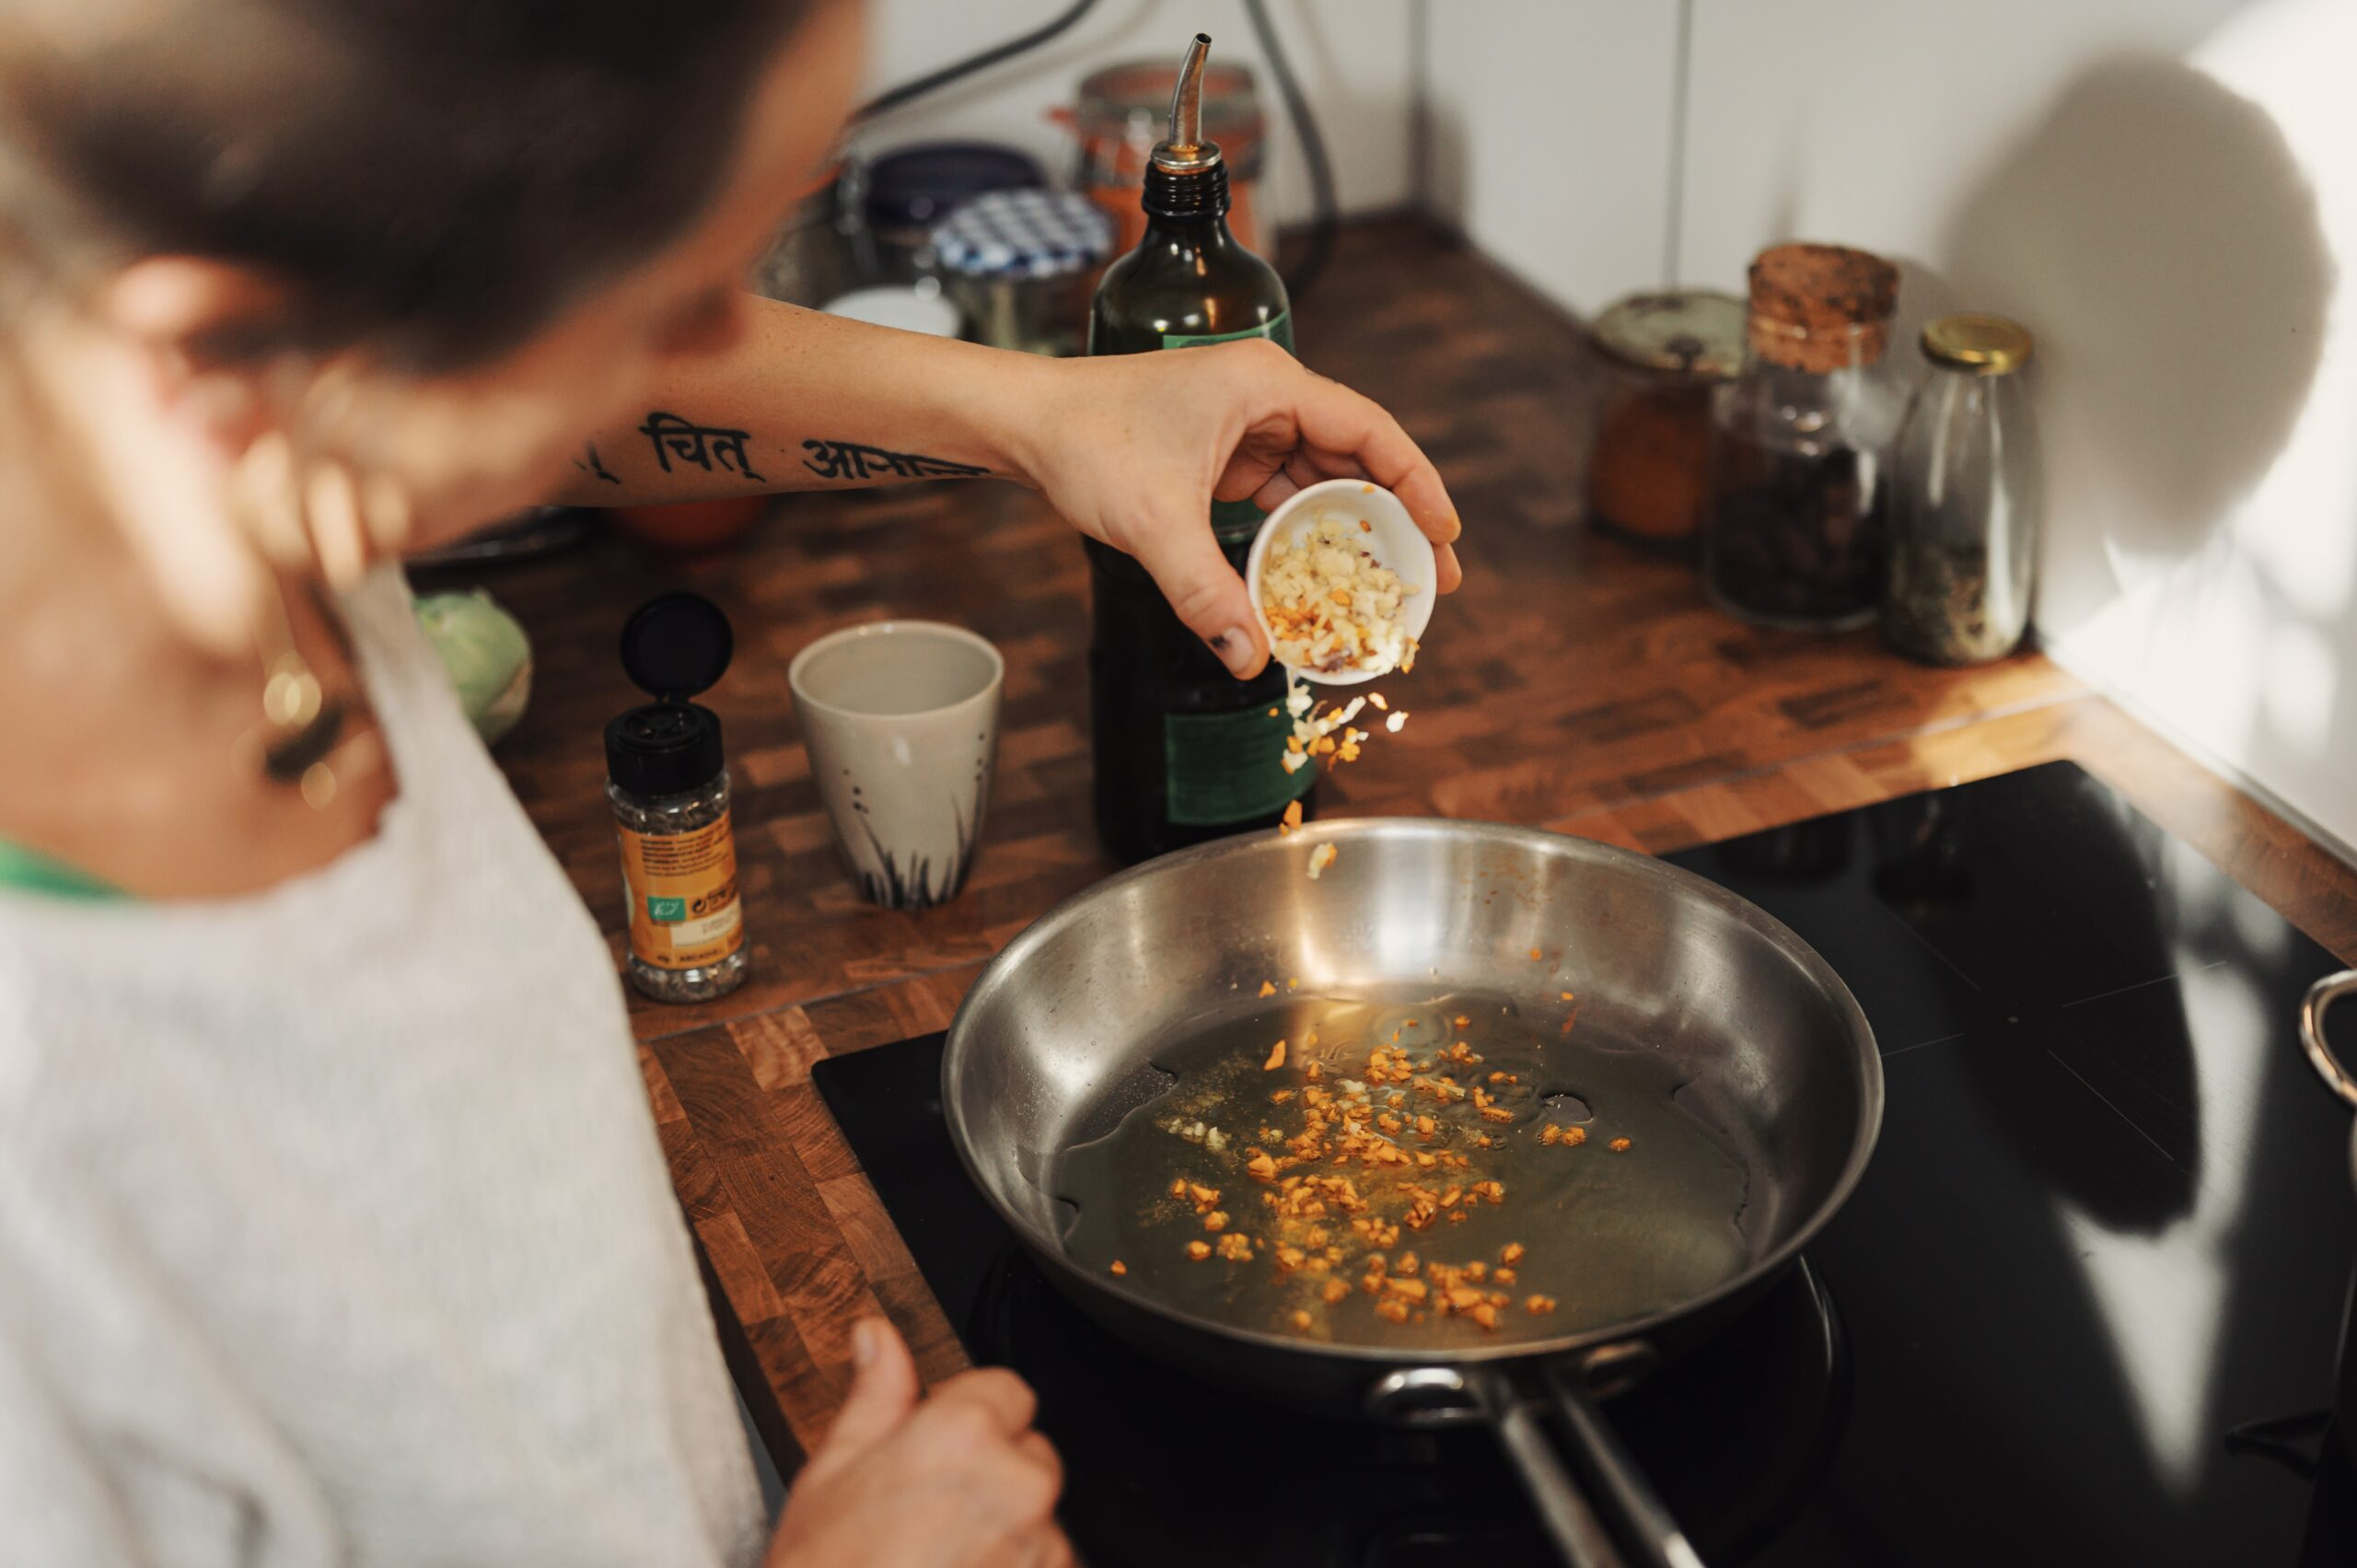 An older woman sprinkling pine nuts into a pan.